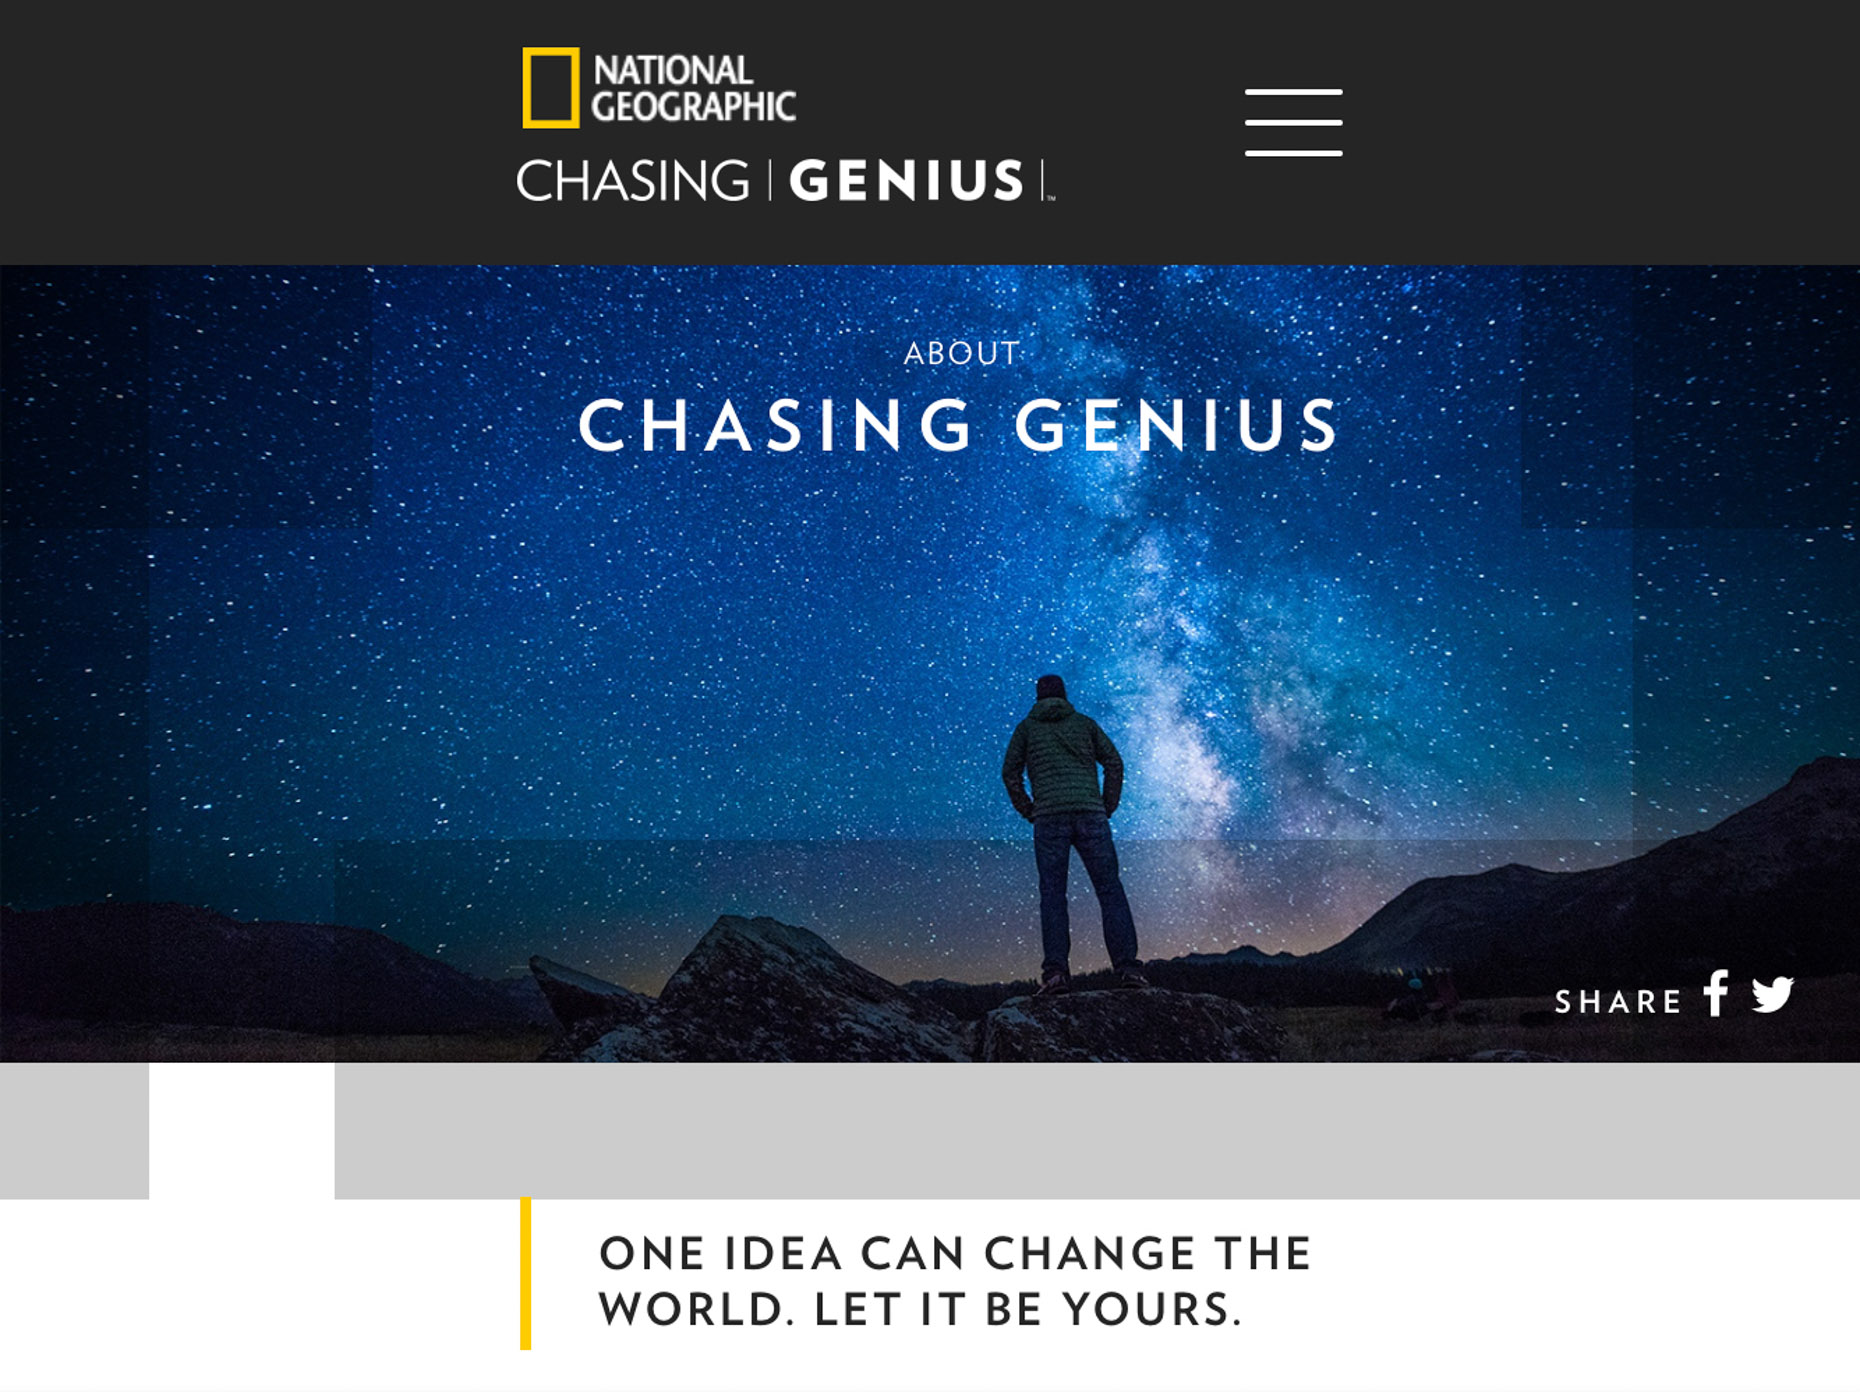 National Geographic - Chasing Genius Contest and Campaign - Hope Valley, California